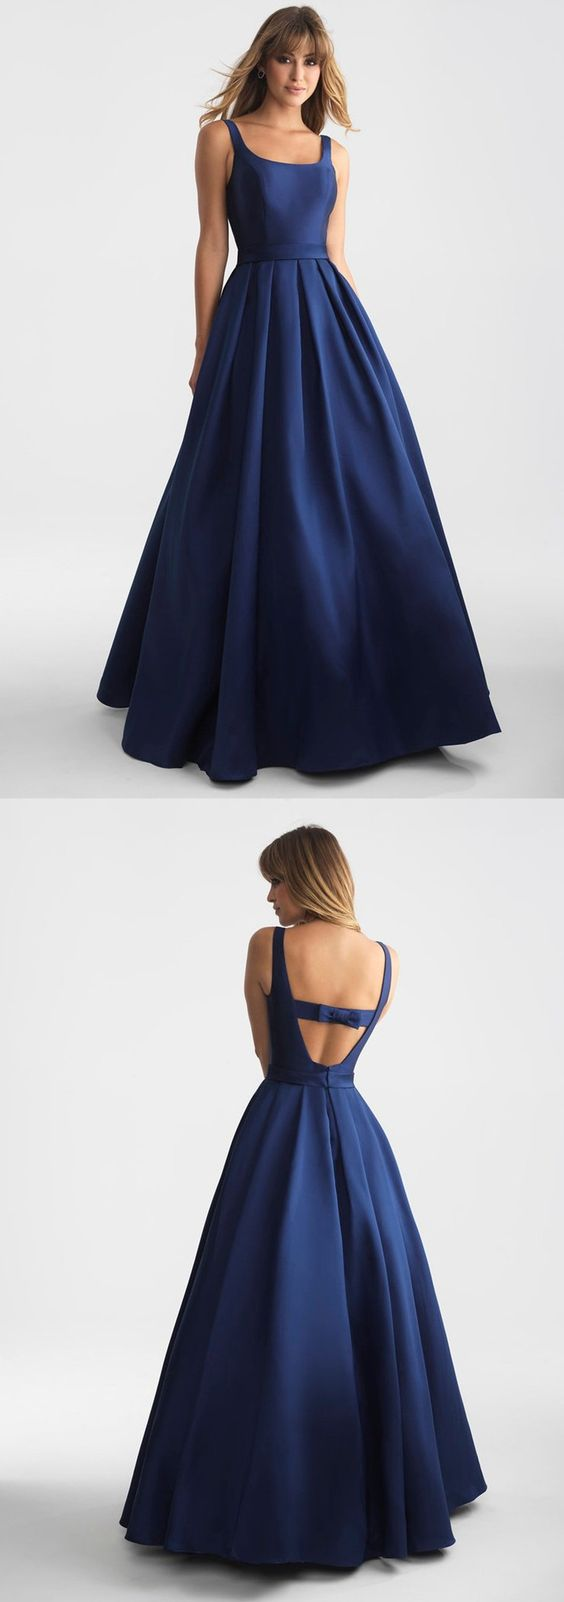 Elegant Navy Blue Long Prom Dress Evening Dress